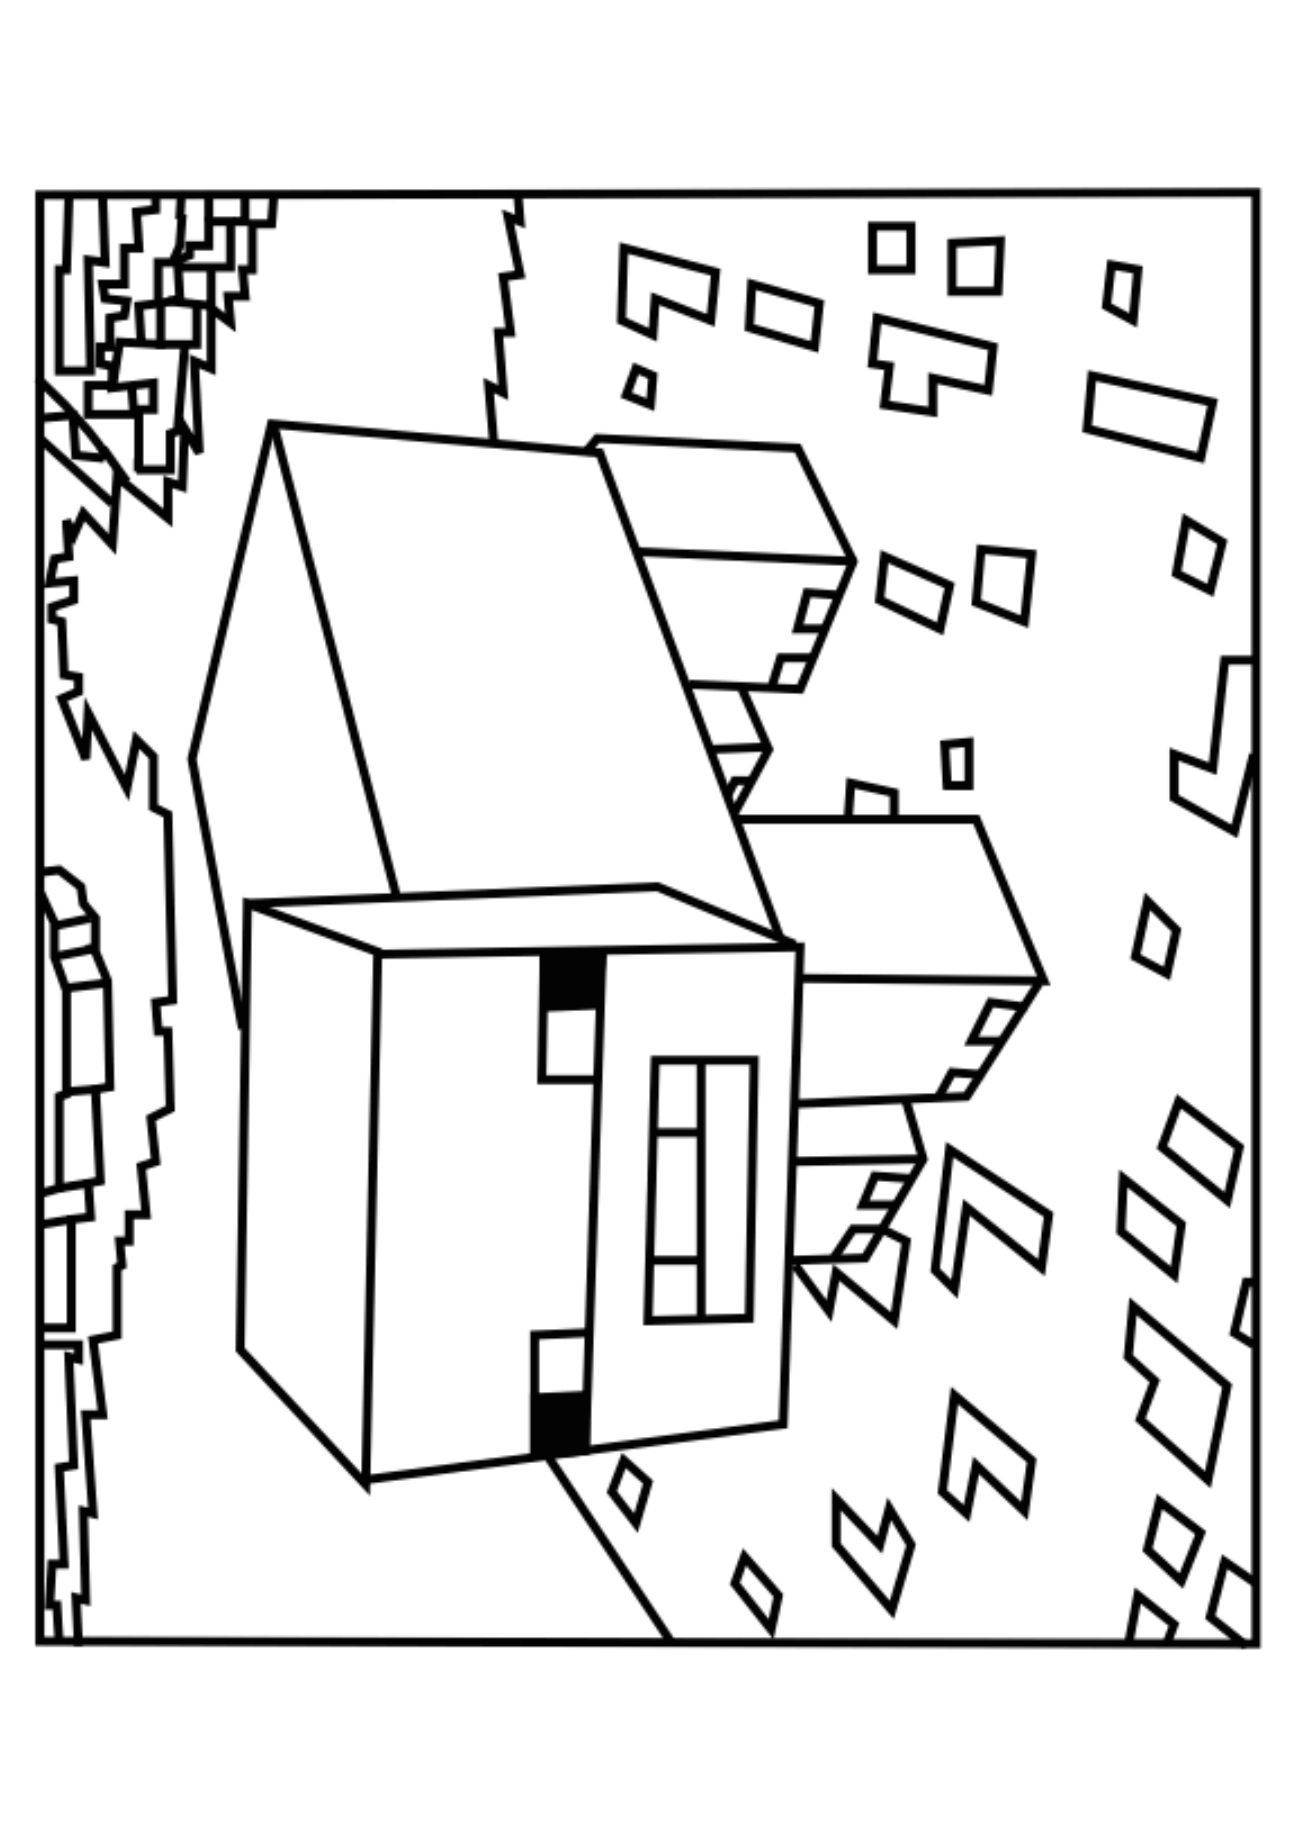 A Minecraft Pig coloring page